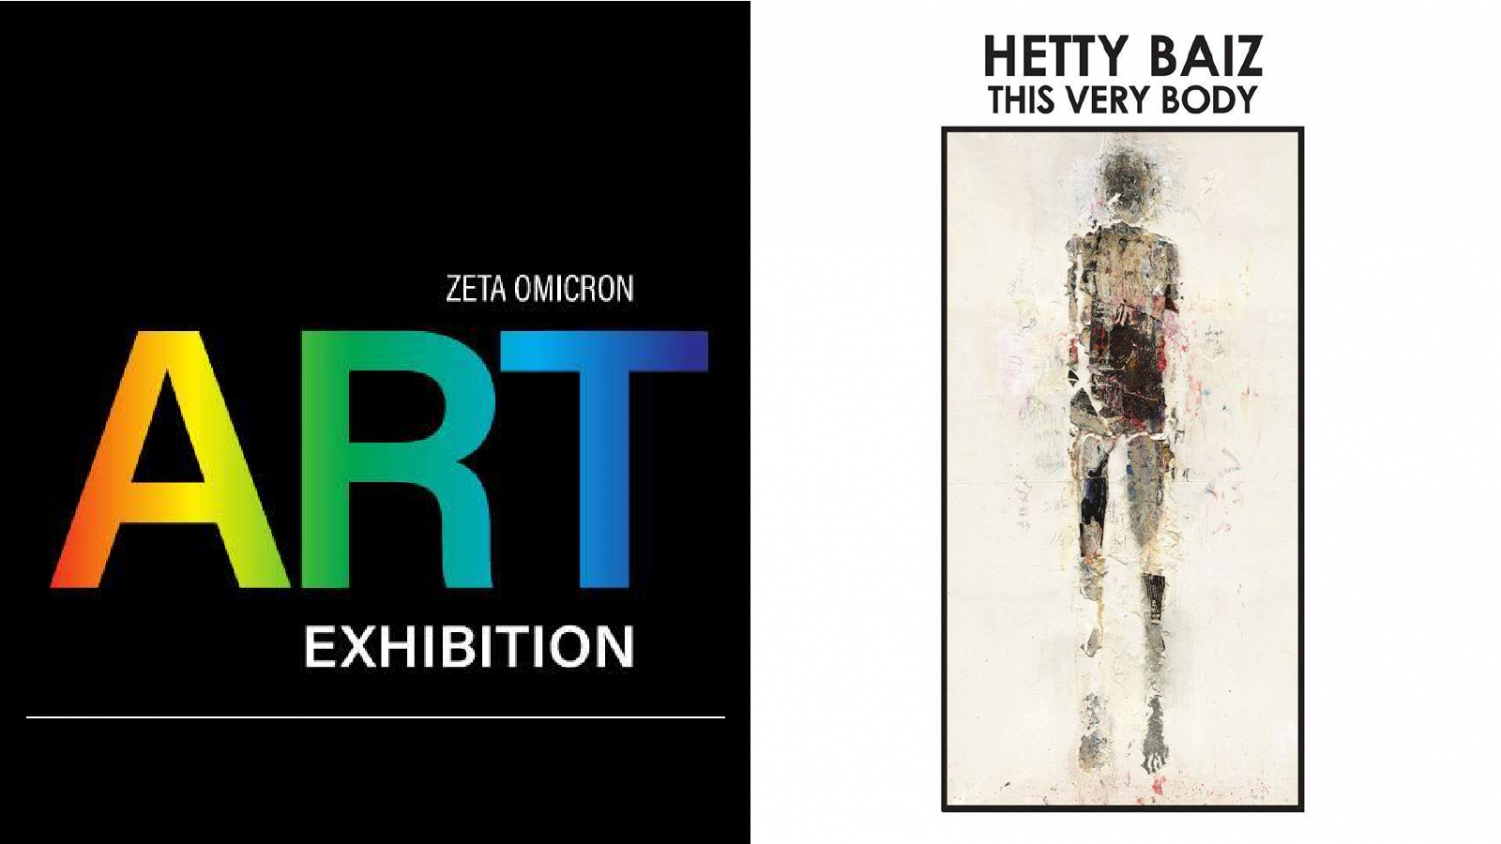 Marywood continues to open all new art exhibits. The Zeta Omicron and